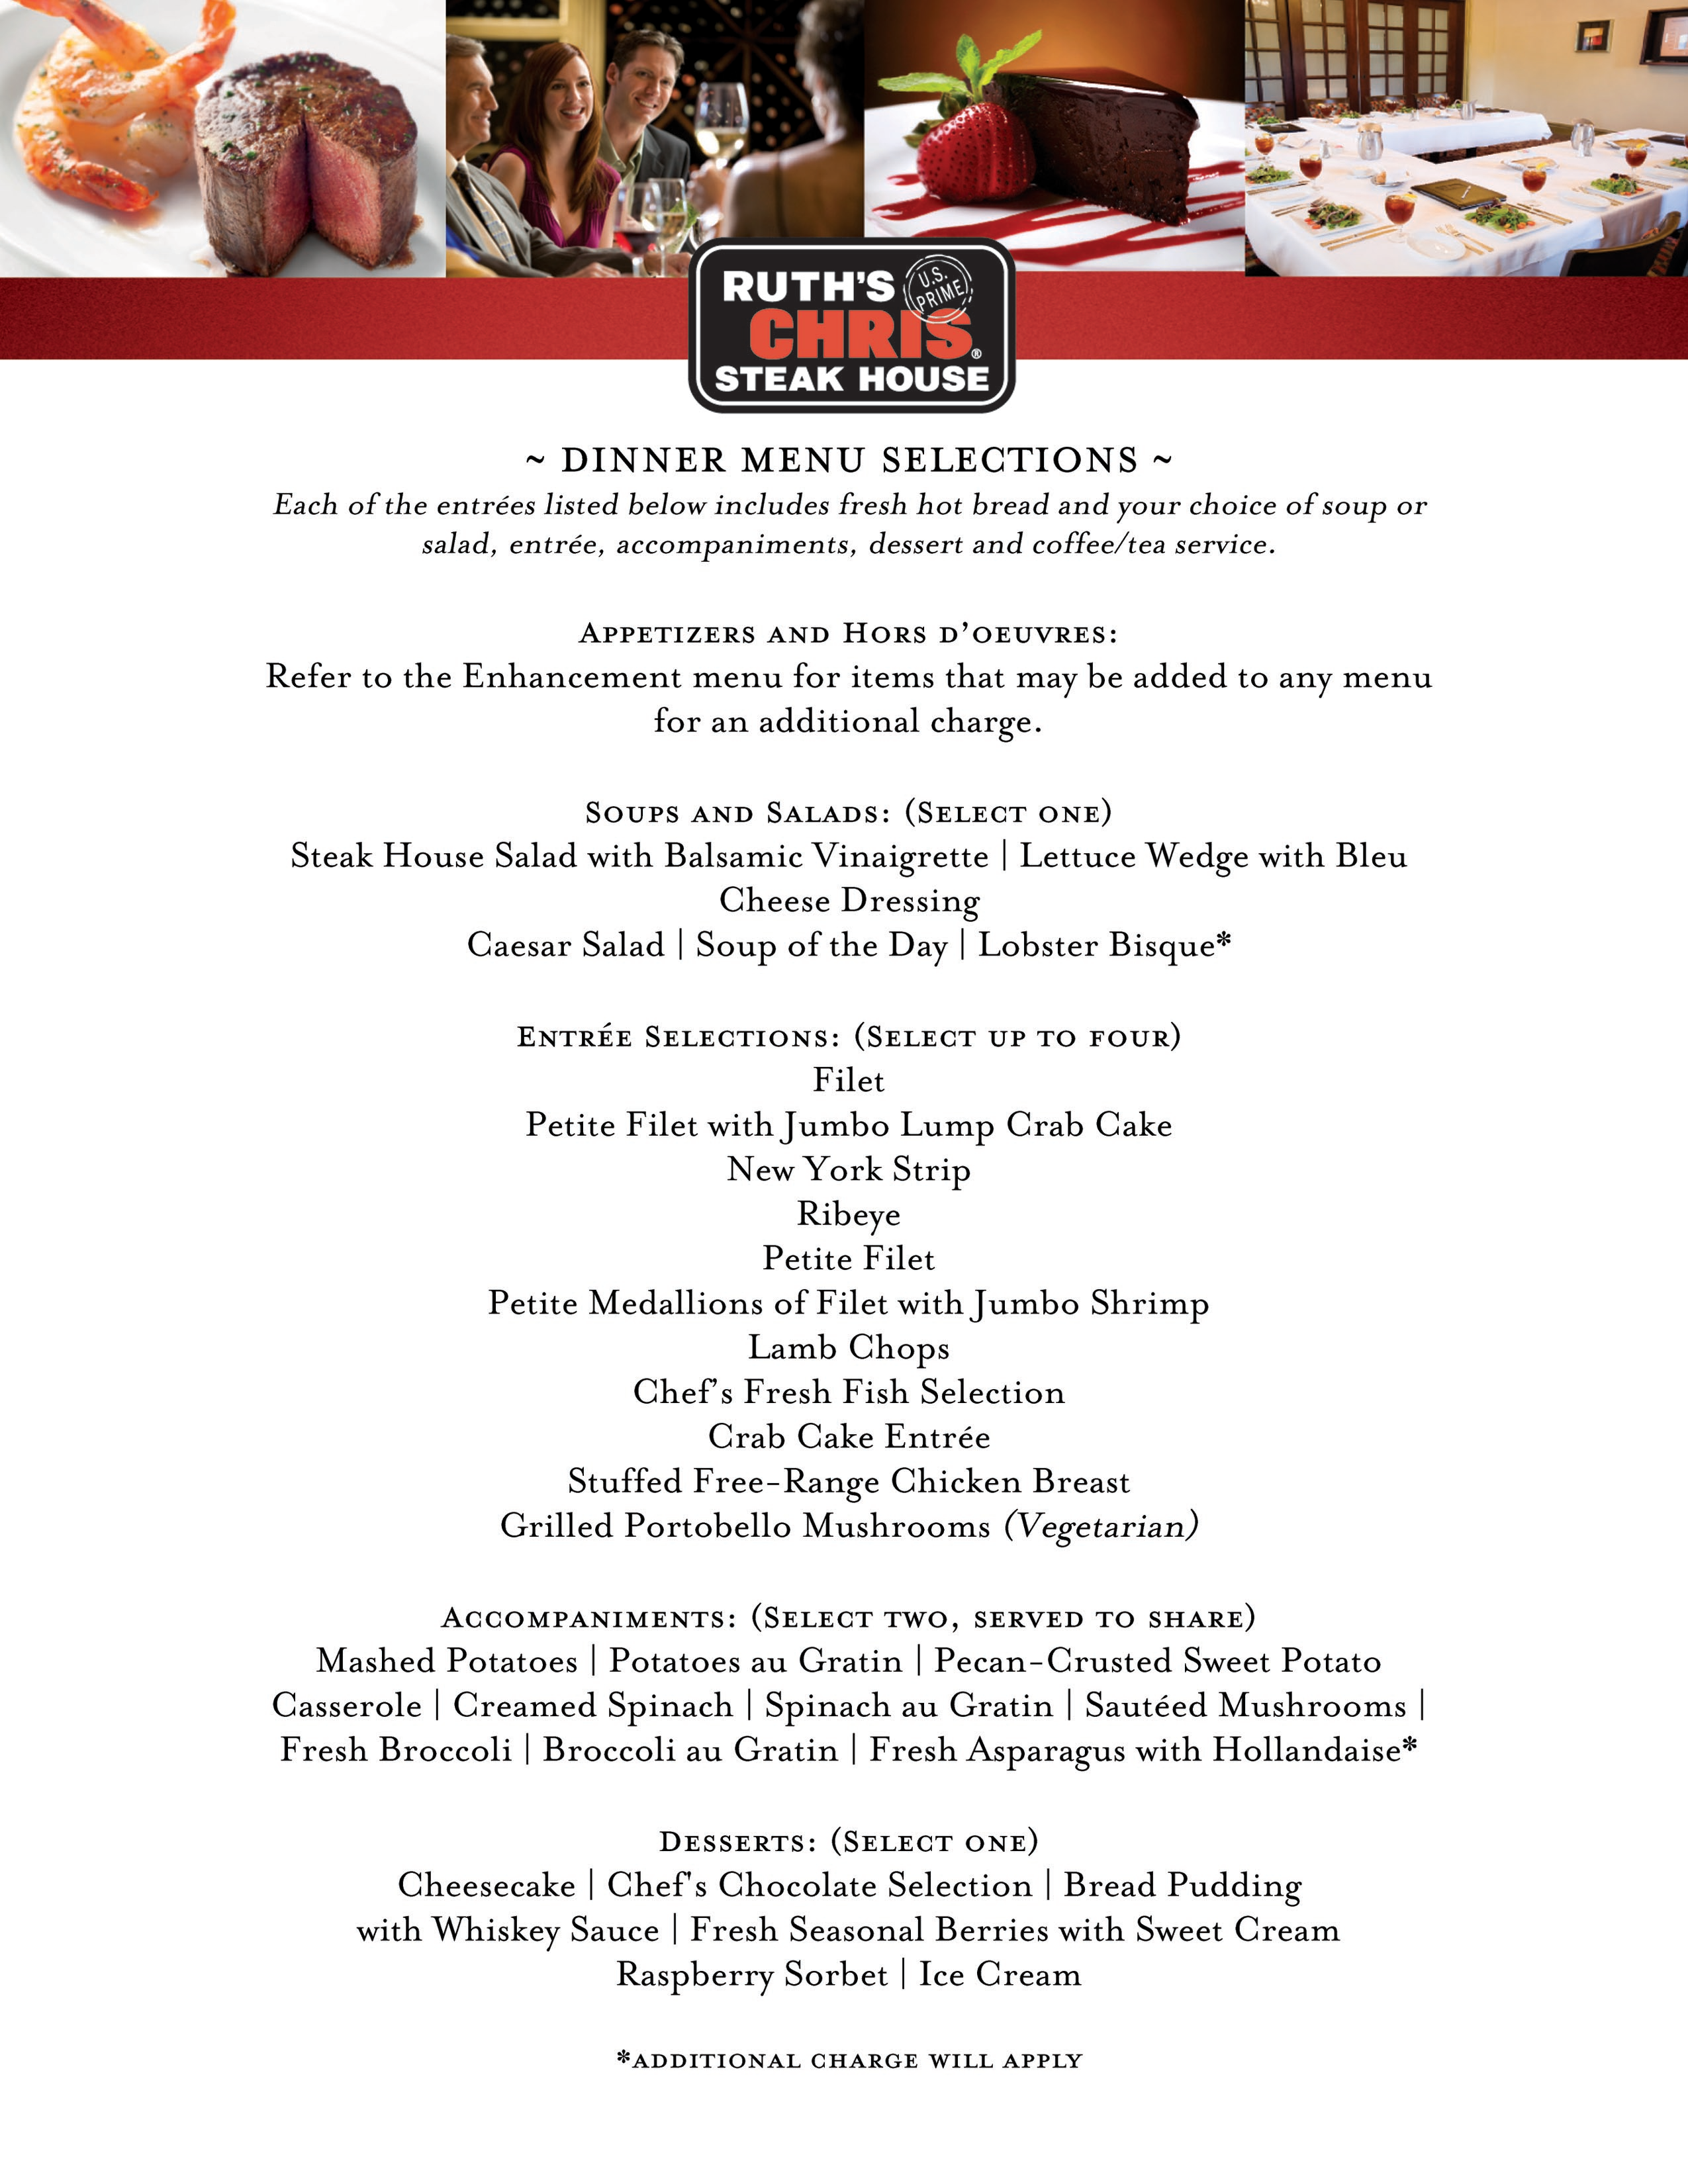 · Ruth's Chris Steakhouse Menu with Prices. See the complete Ruth's Chris menu with prices here, including the Steaks and Chops menu, shrimp and seafood menu, as well as the extensive vegetables and salads menu/5(8).